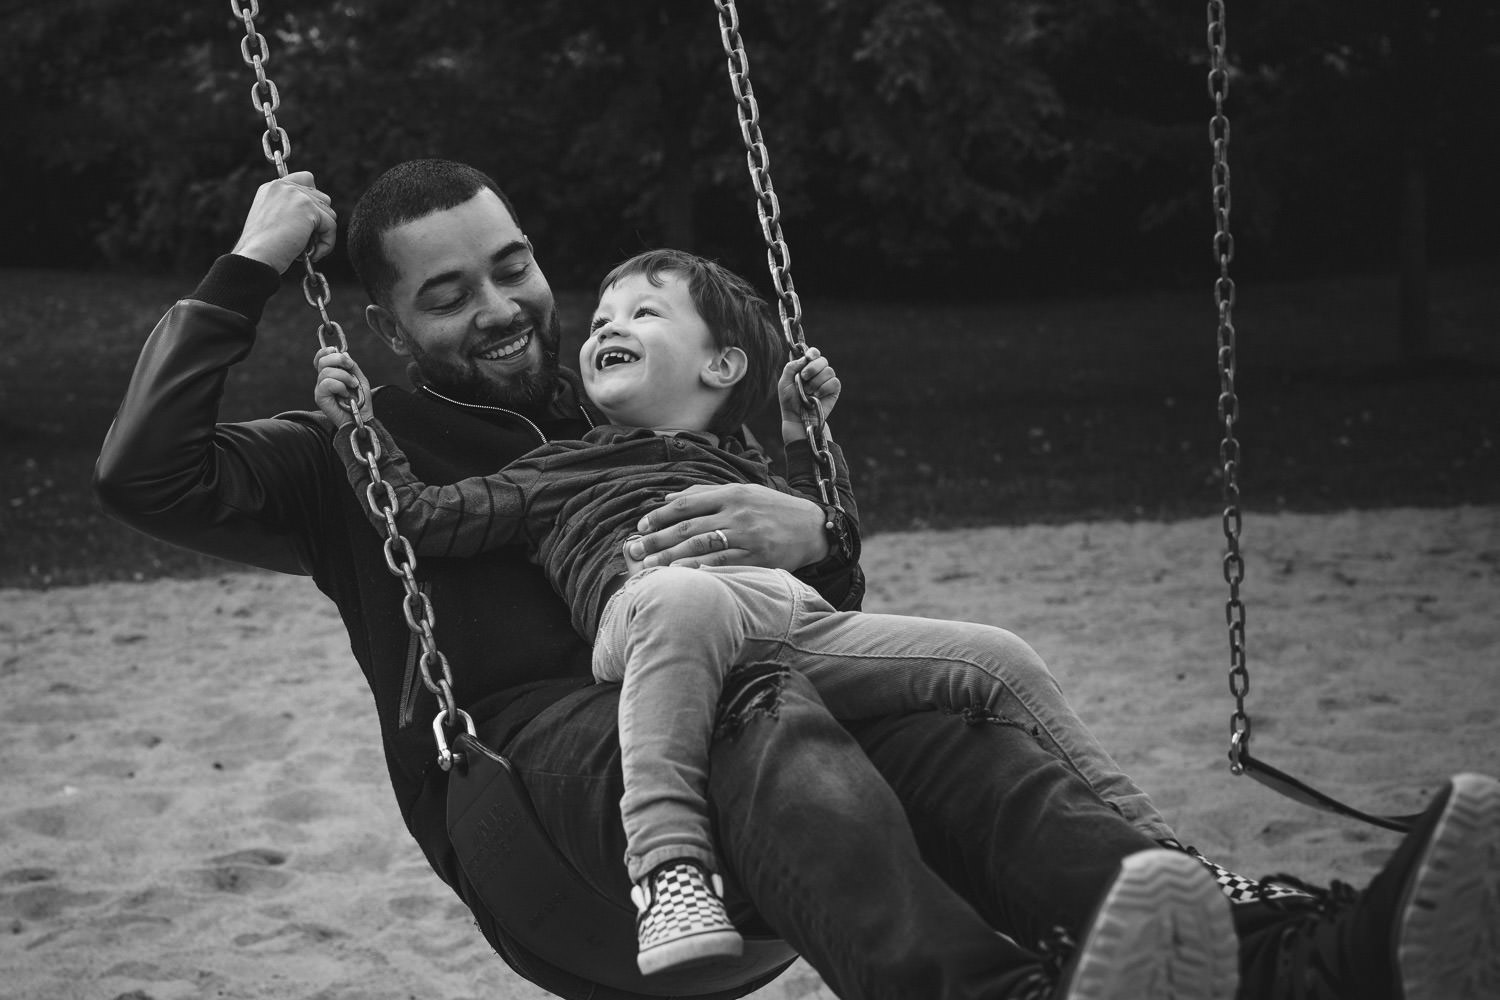 Father and son ride on swing together